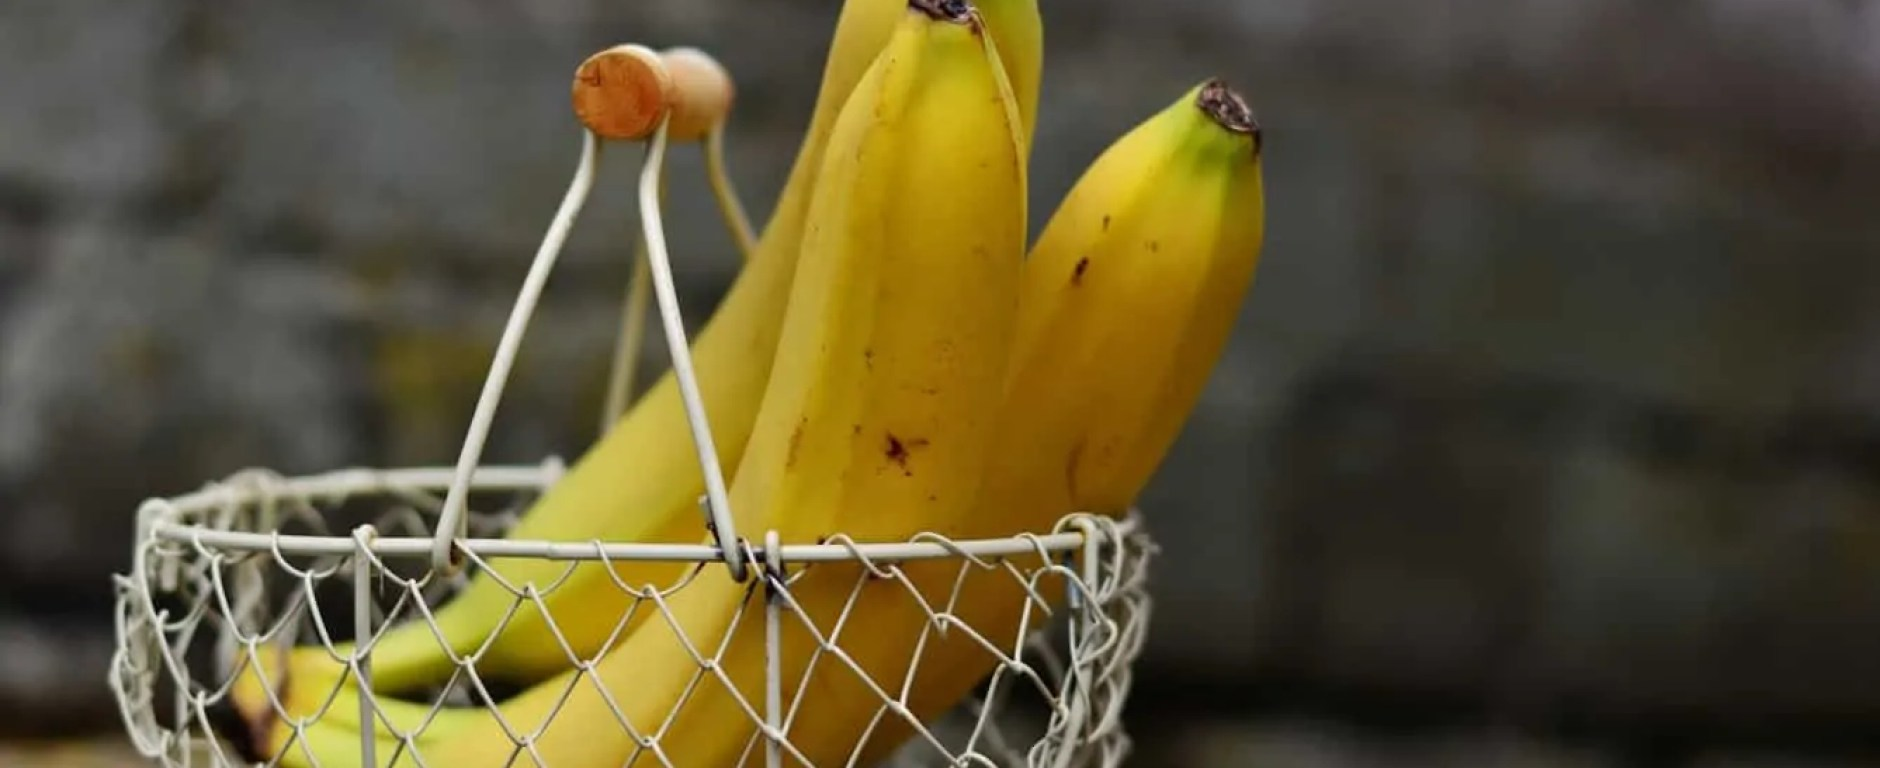 Three bananas in metal basket